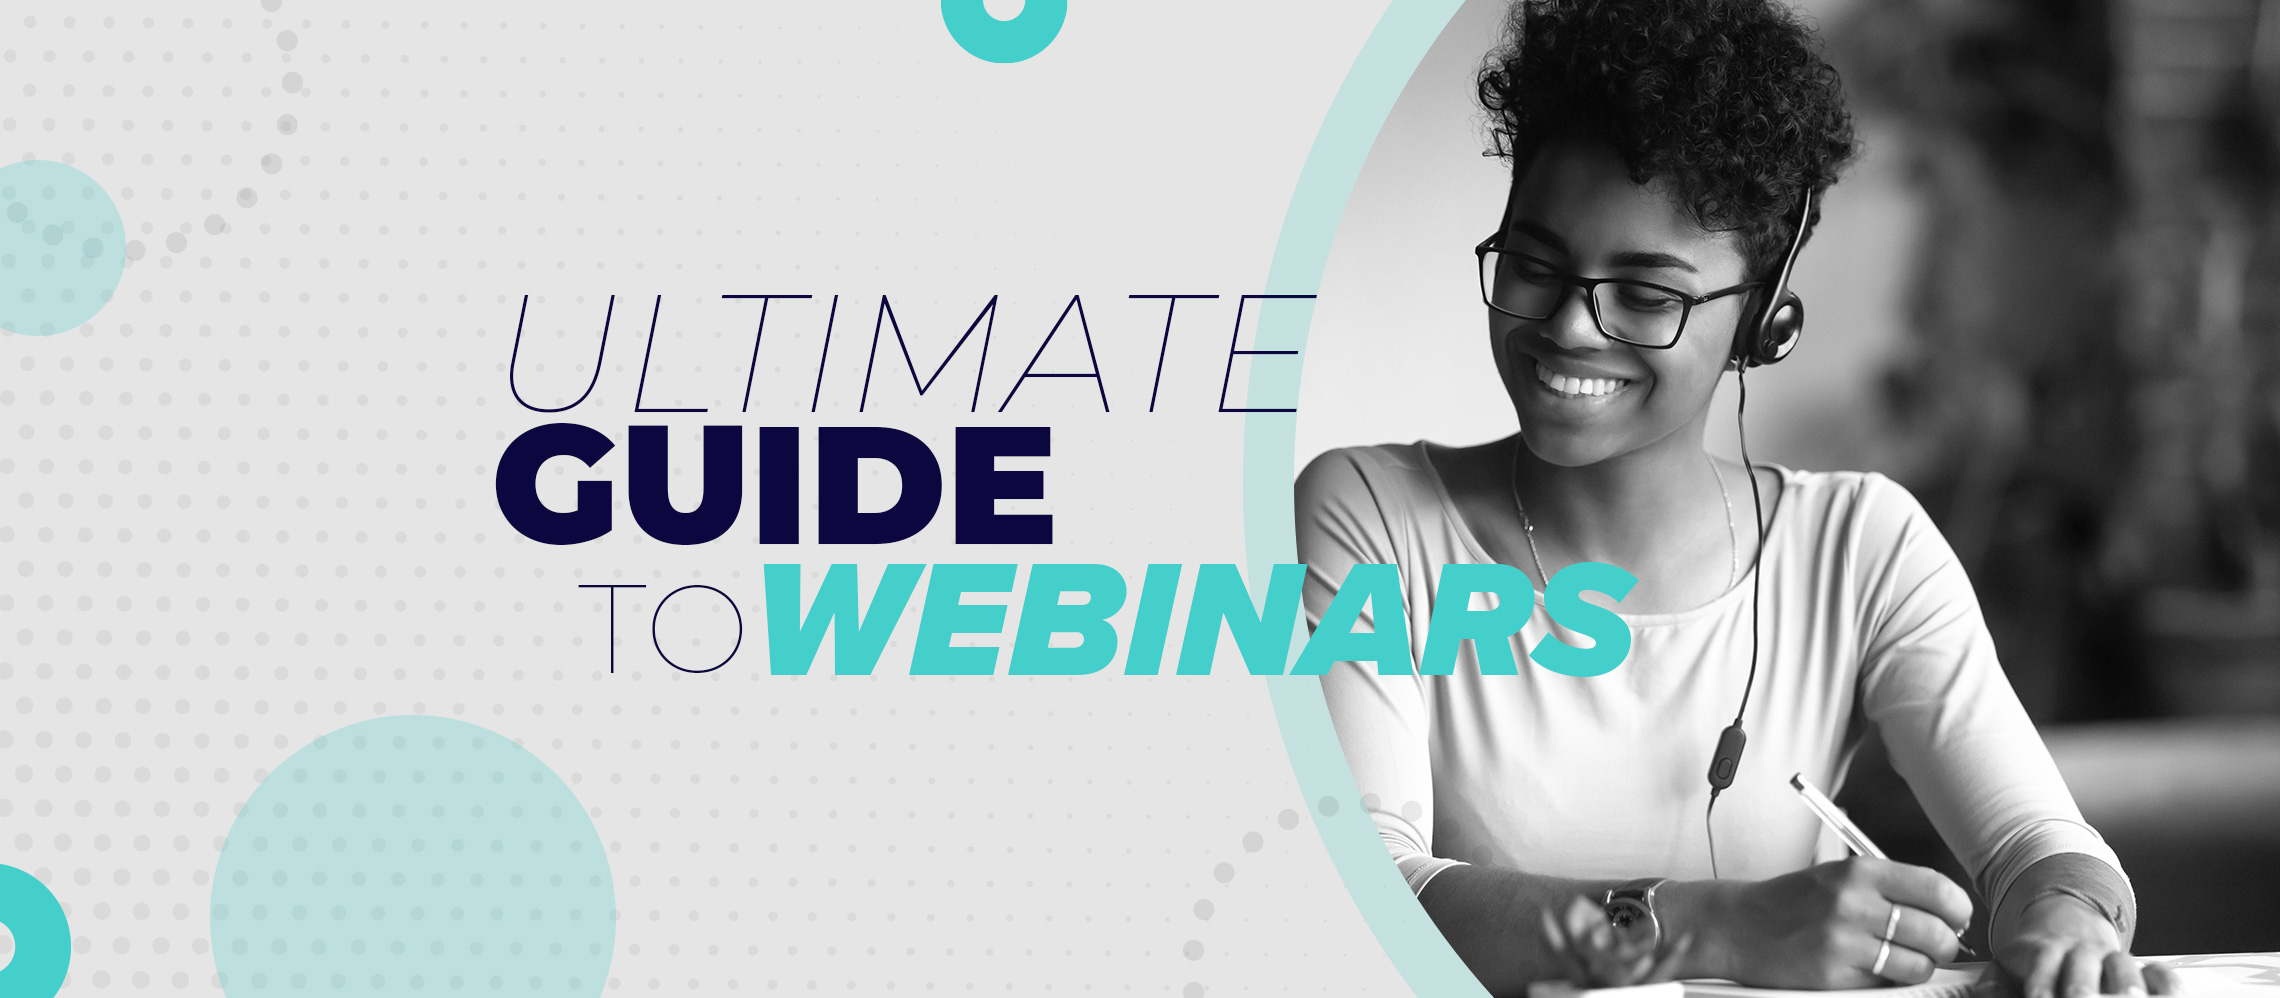 The ultimate guide to creating engaging webinars.